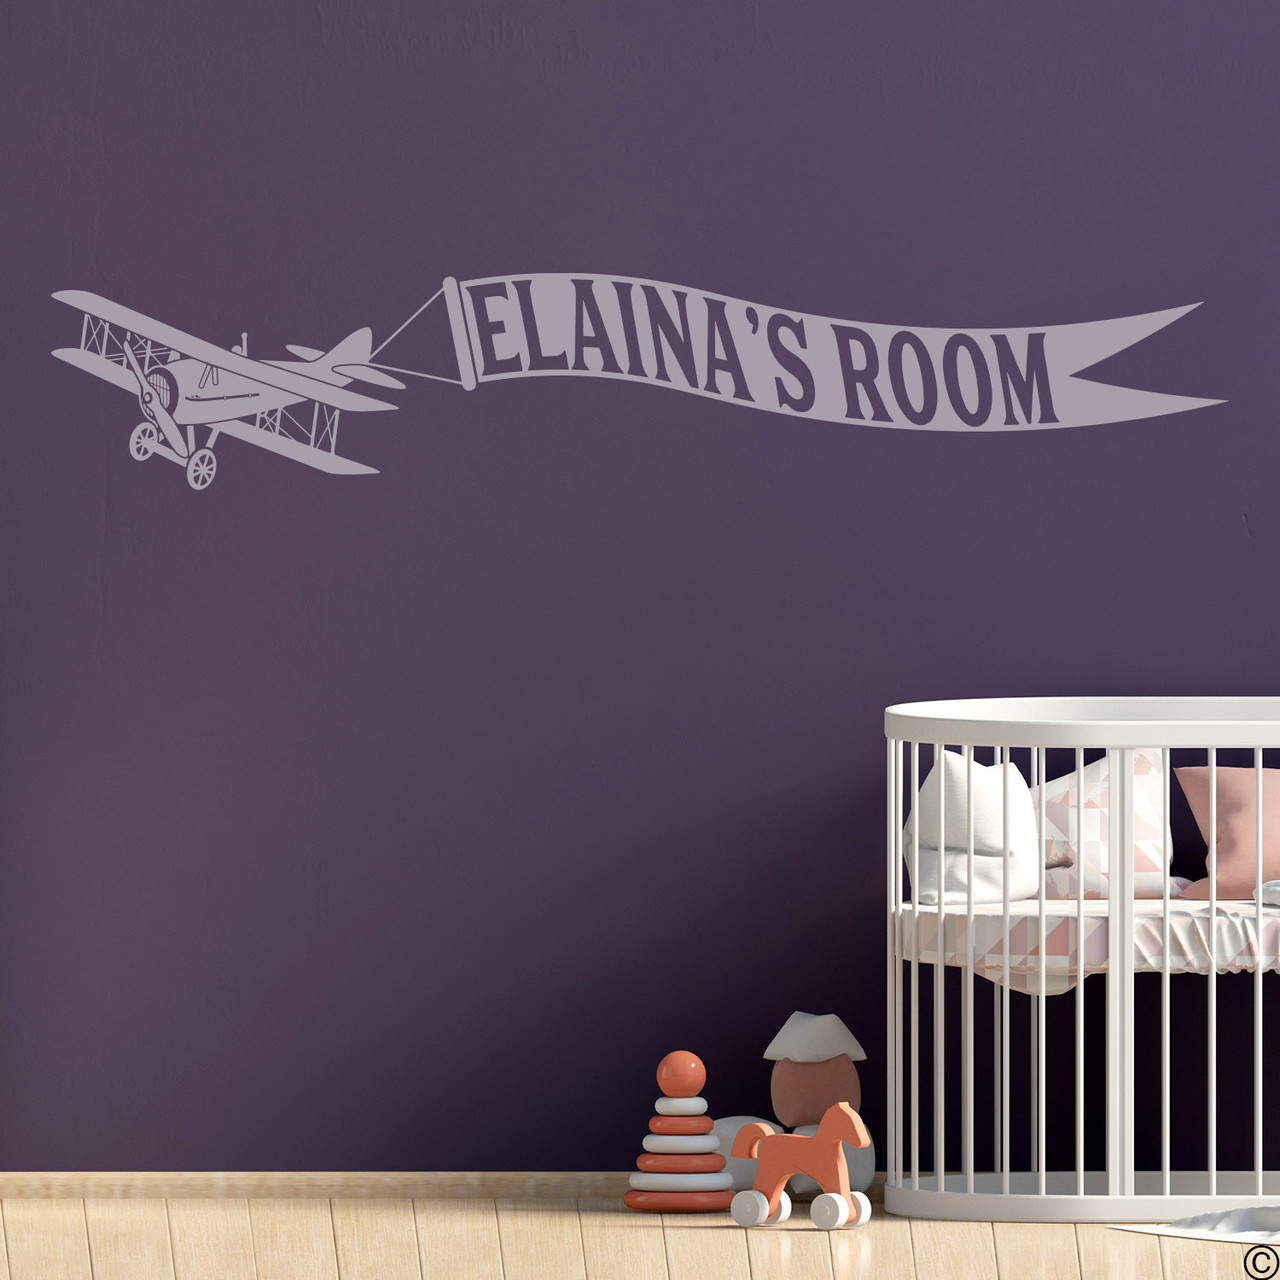 Biplane wall decal with customizable name banner on a nursery room wall in limited edition wisteria vinyl.